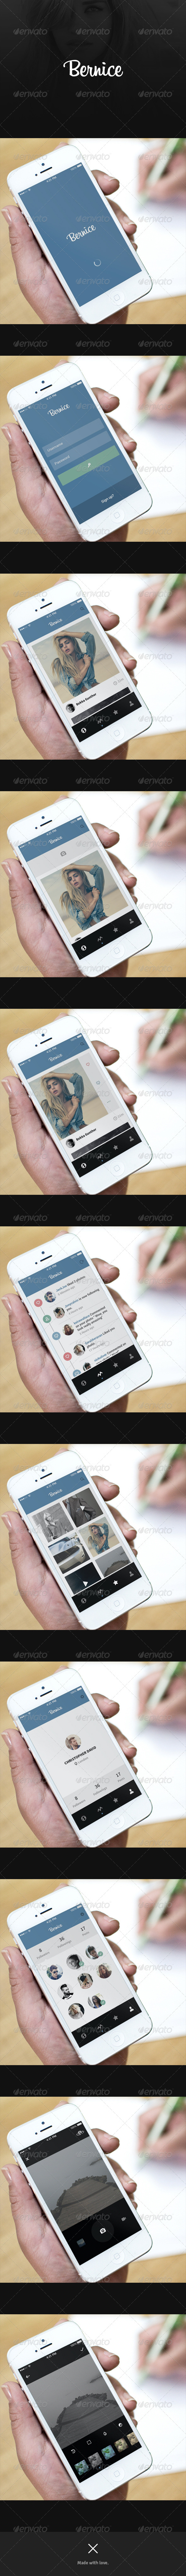 Photo-Sharing App UI - Bernice - User Interfaces Web Elements